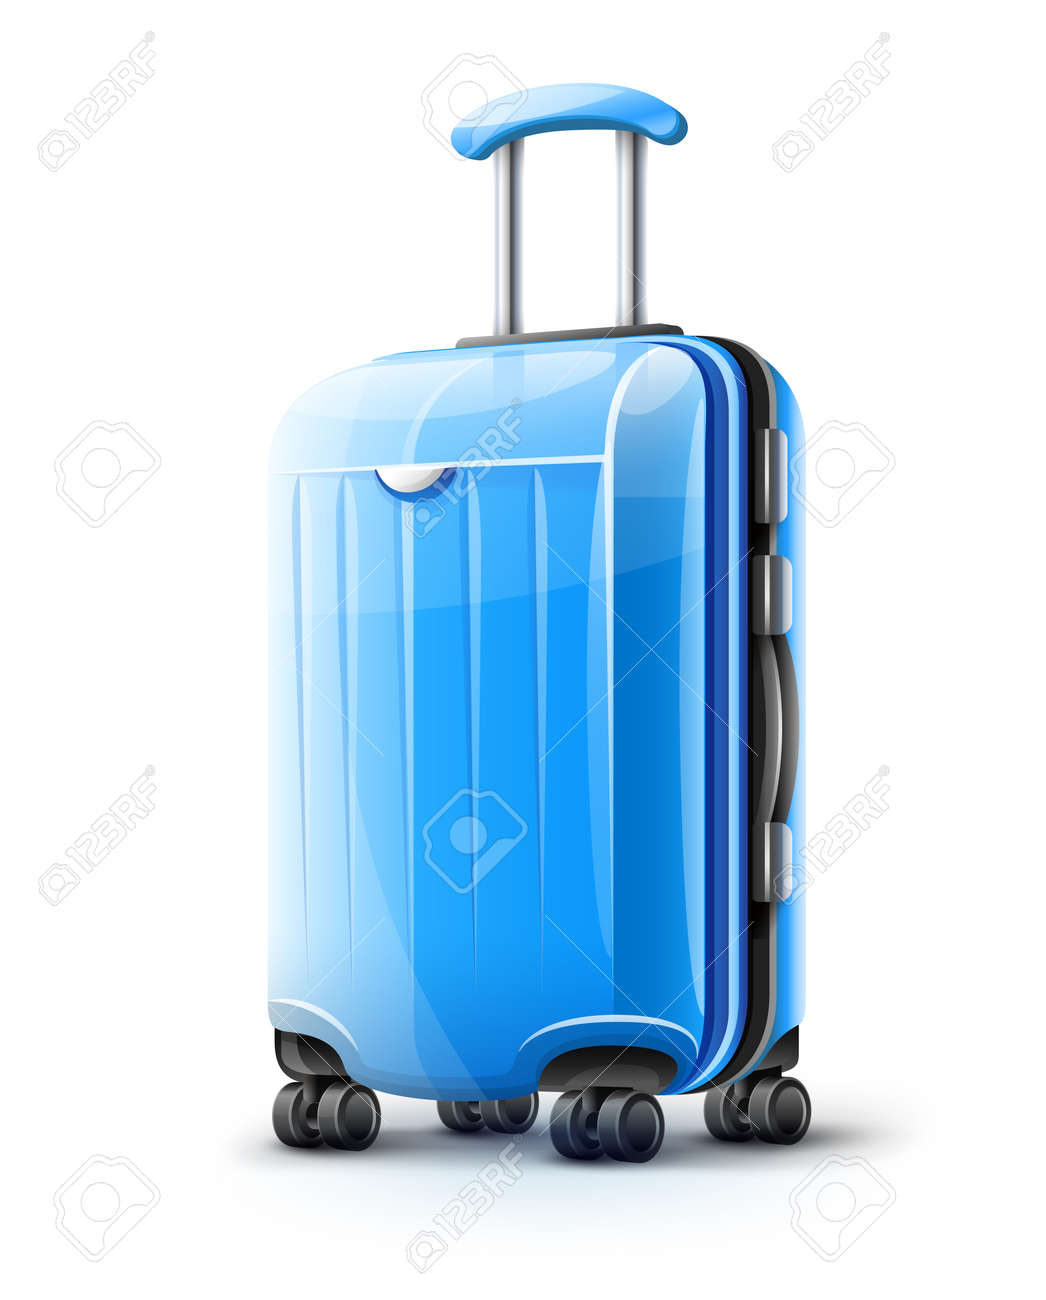 Blue modern suitcase for travel, case icon isolated on white transparent background. EPS10 vector illustration - 126239701